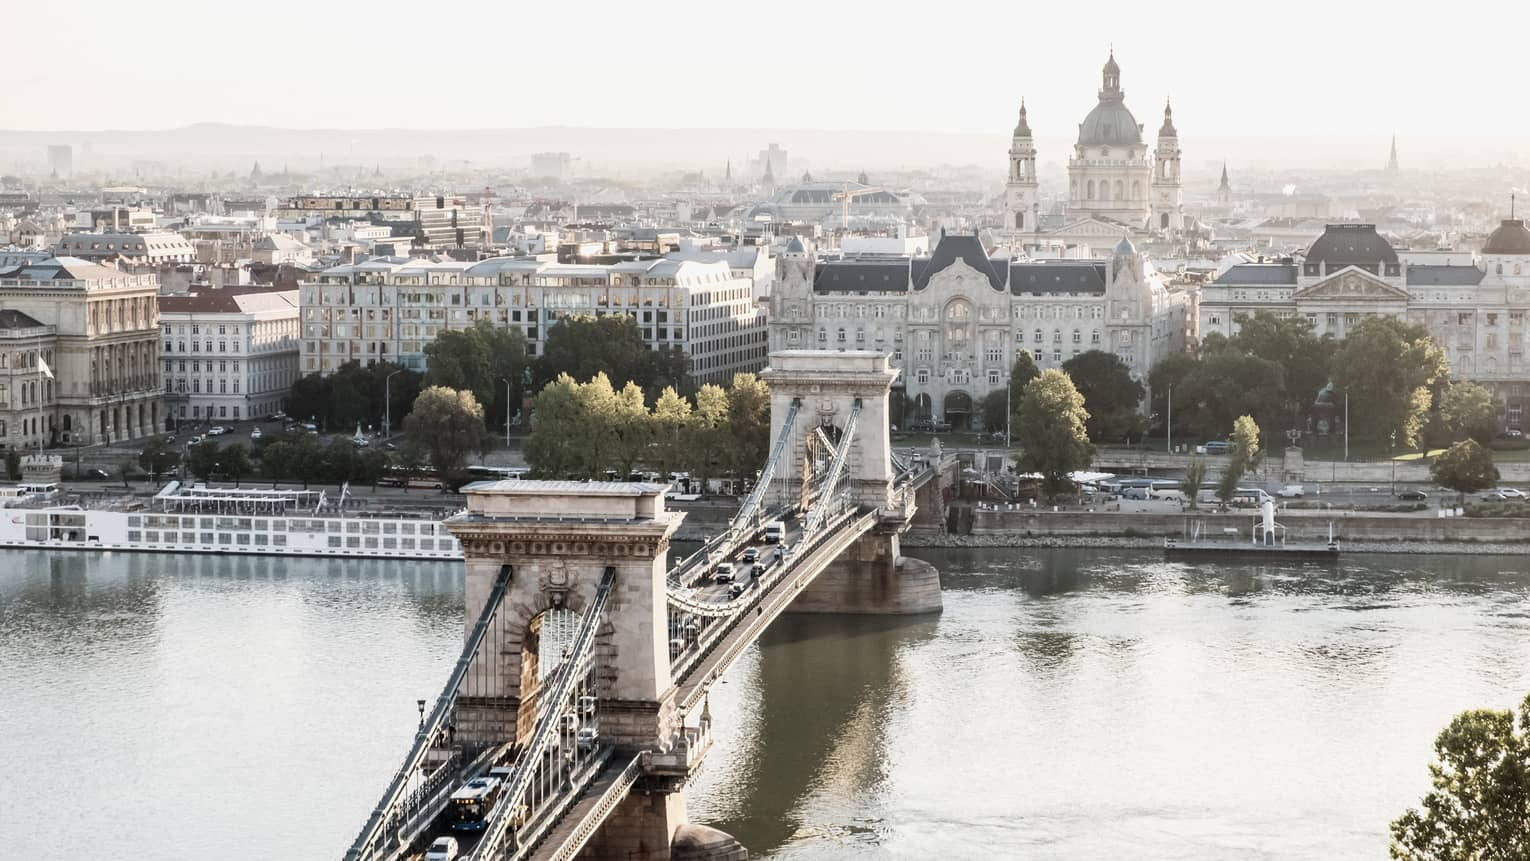 Széchenyi Chain Bridge over the Danube River, city views